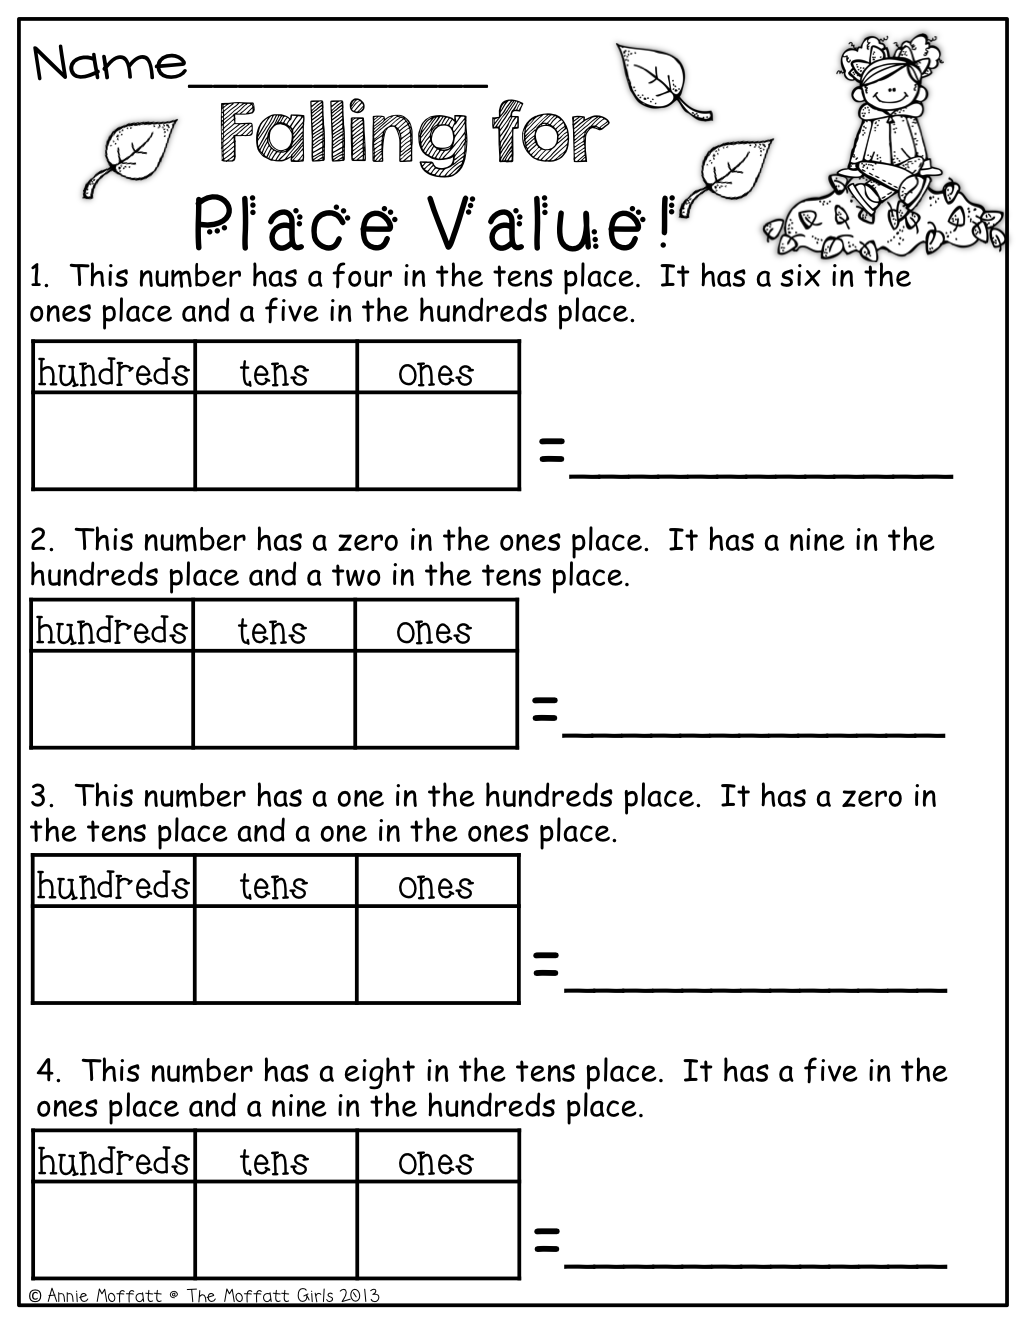 16 Best Fun Math Worksheets For 1st Graders Images On Best